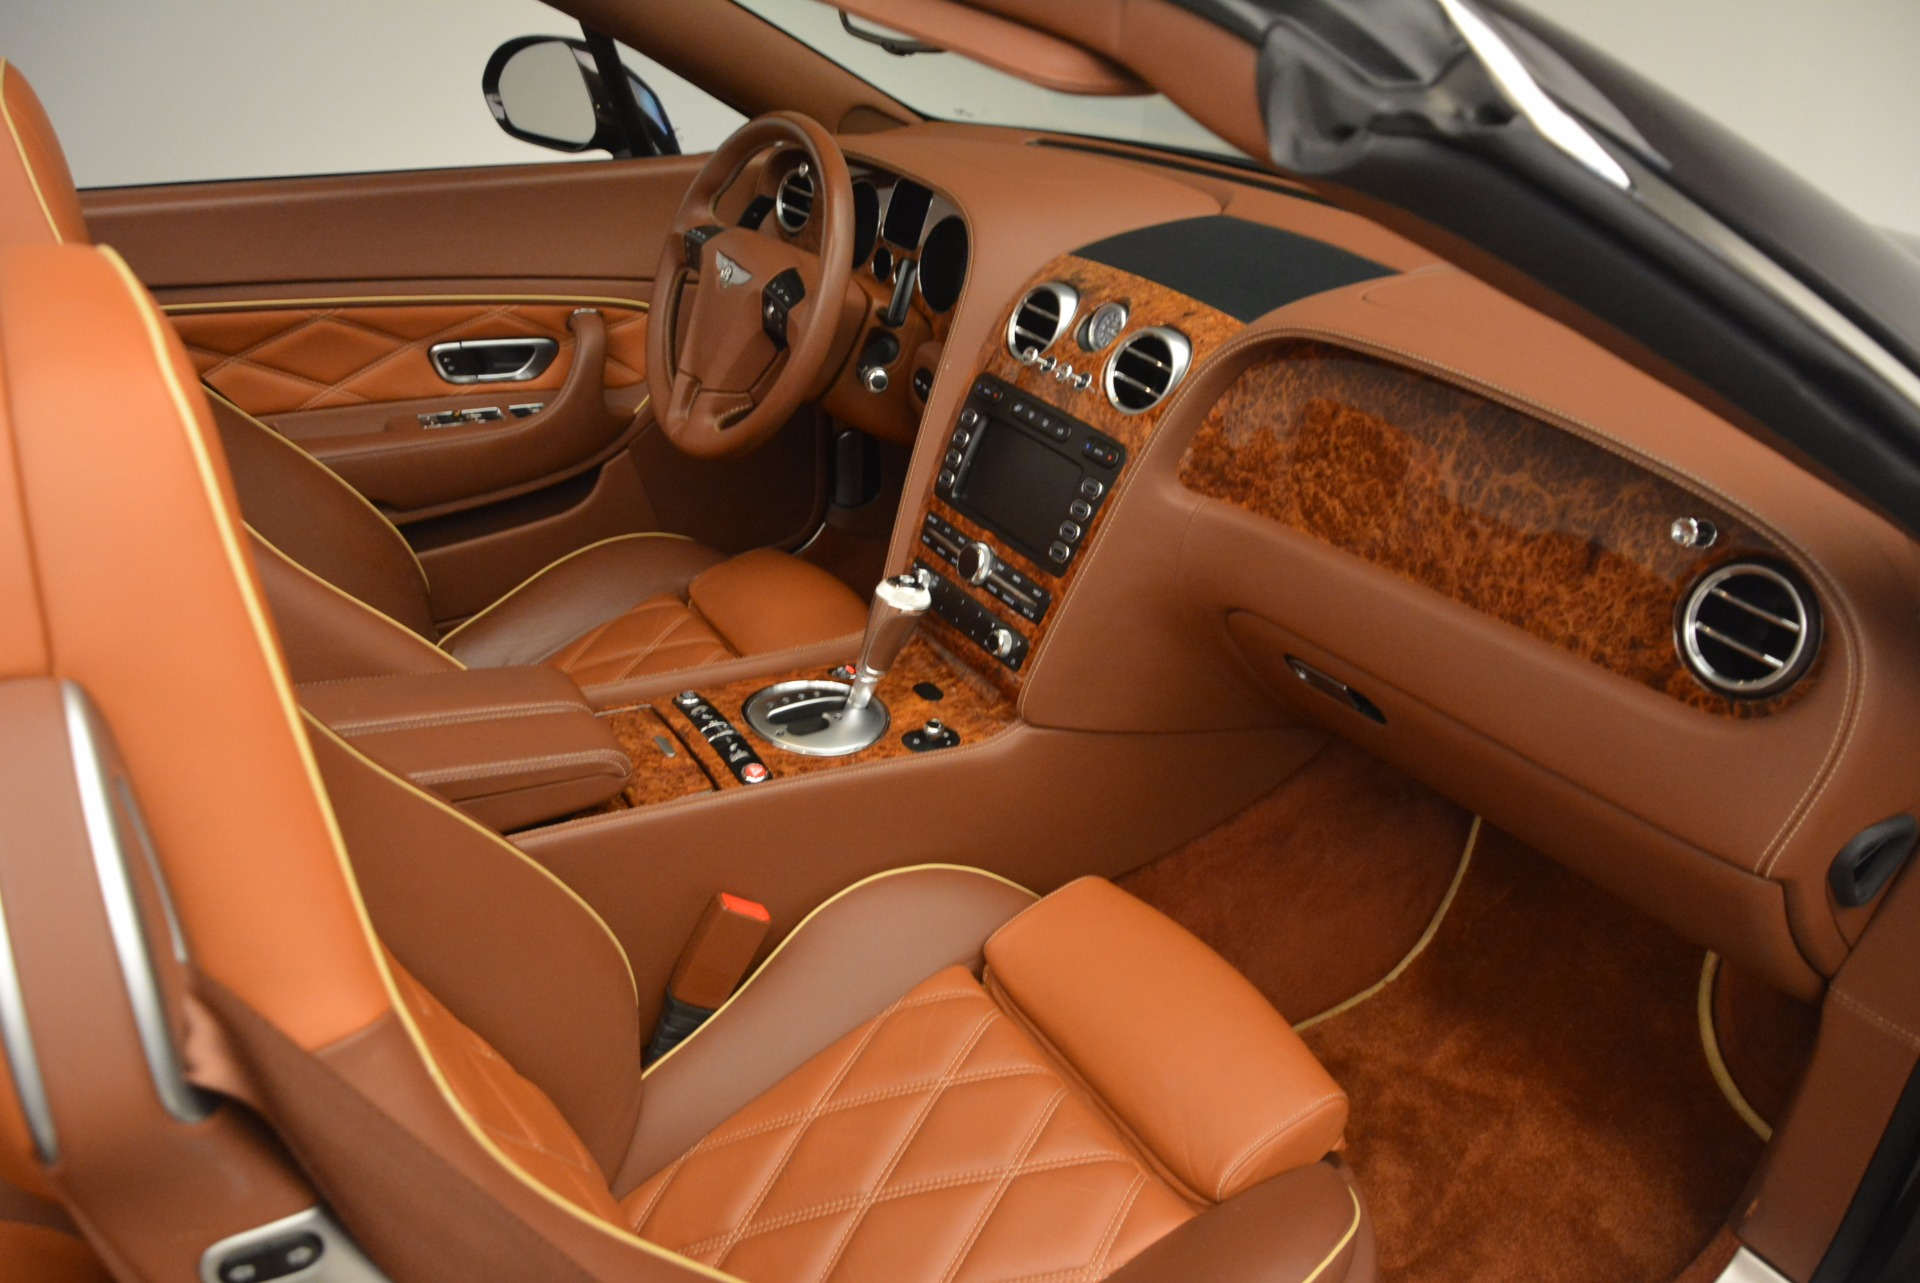 Used 2010 Bentley Continental GT Series 51 For Sale In Greenwich, CT 1222_p41